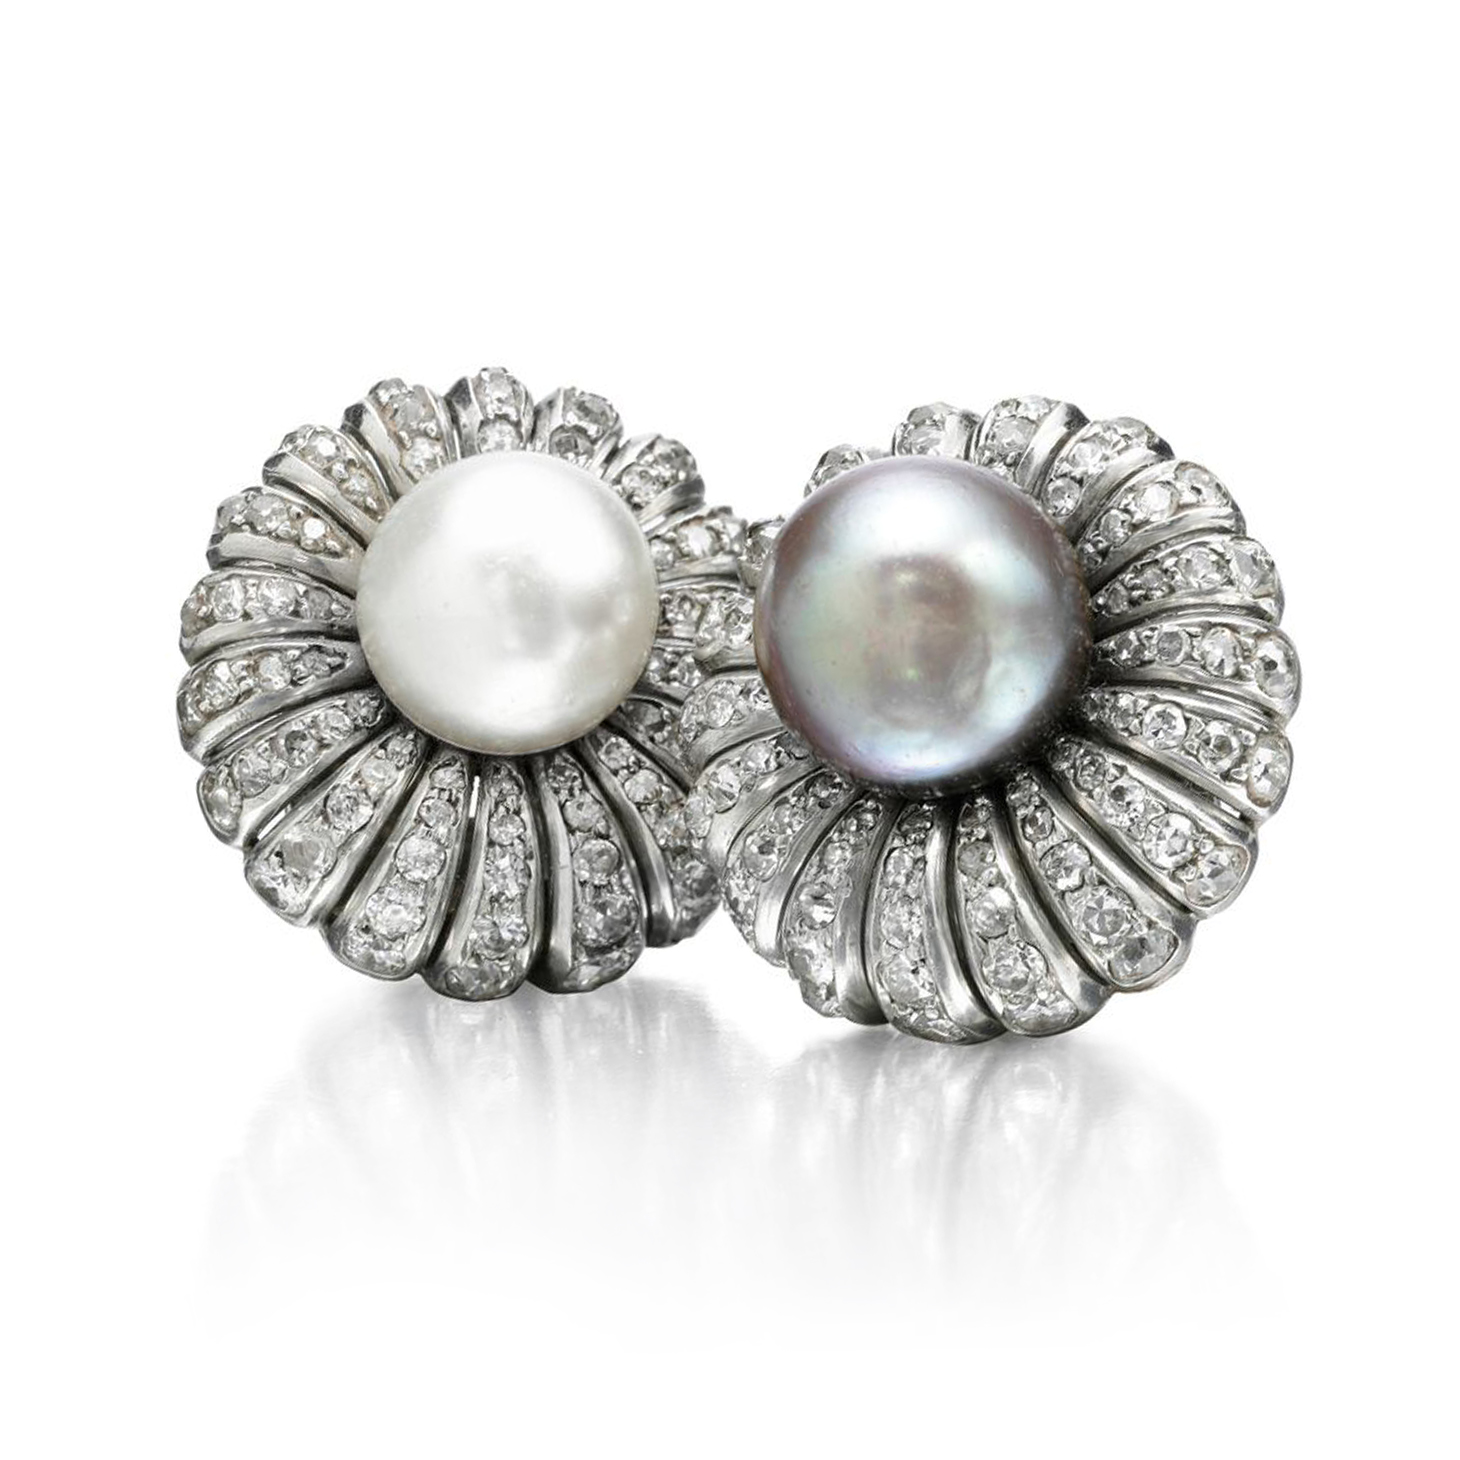 A Pair of Natural Pearl and Diamond Ear Clips, by Suzanne Belperron, circa 1940